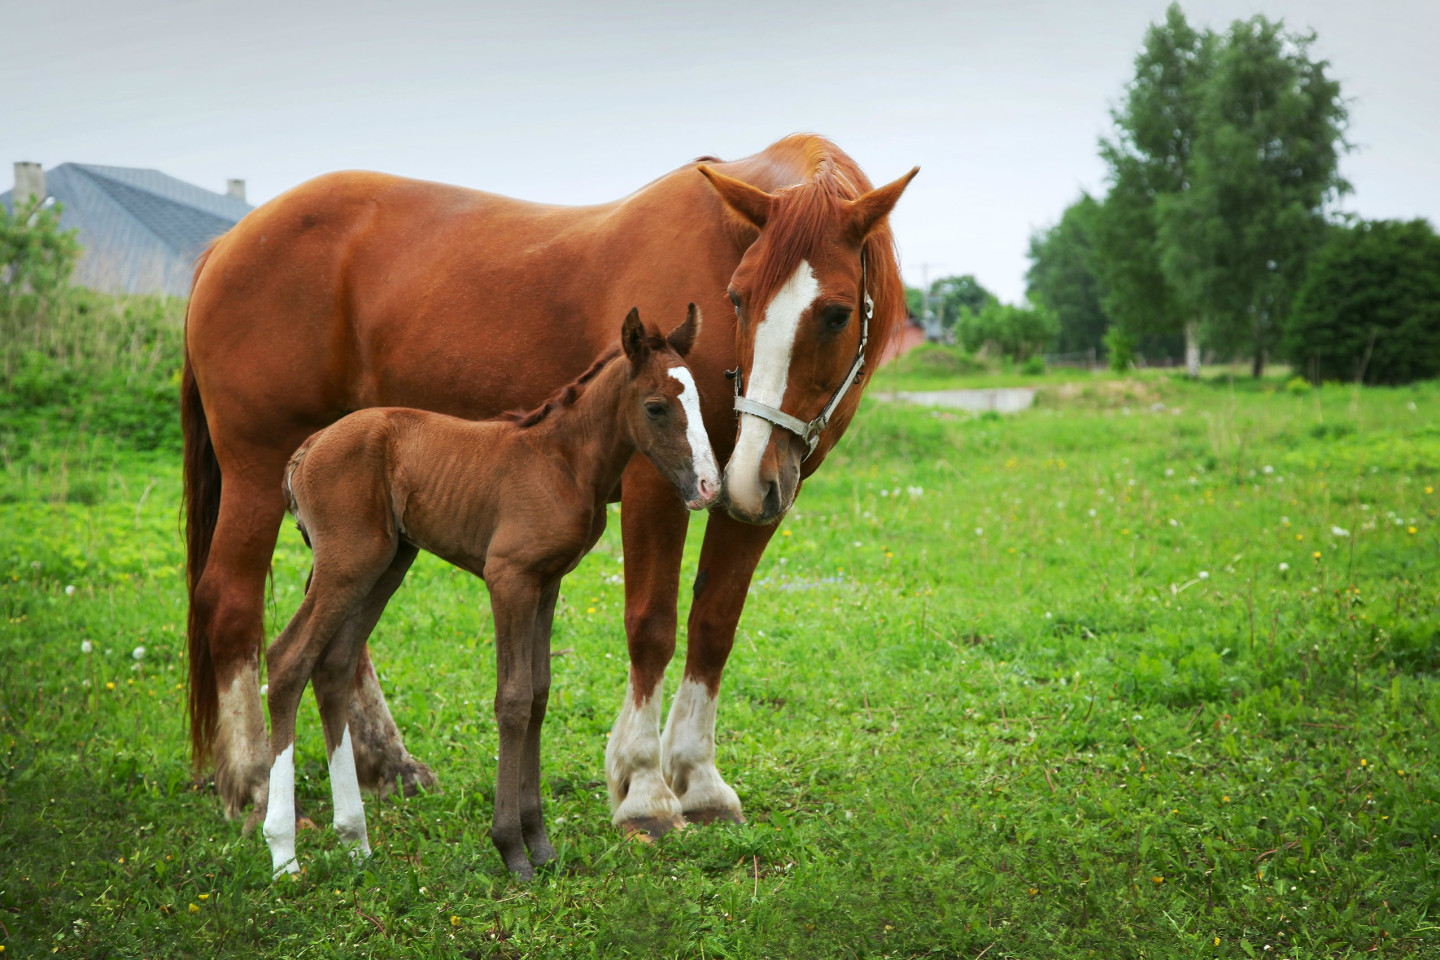 beautiful horses on the field